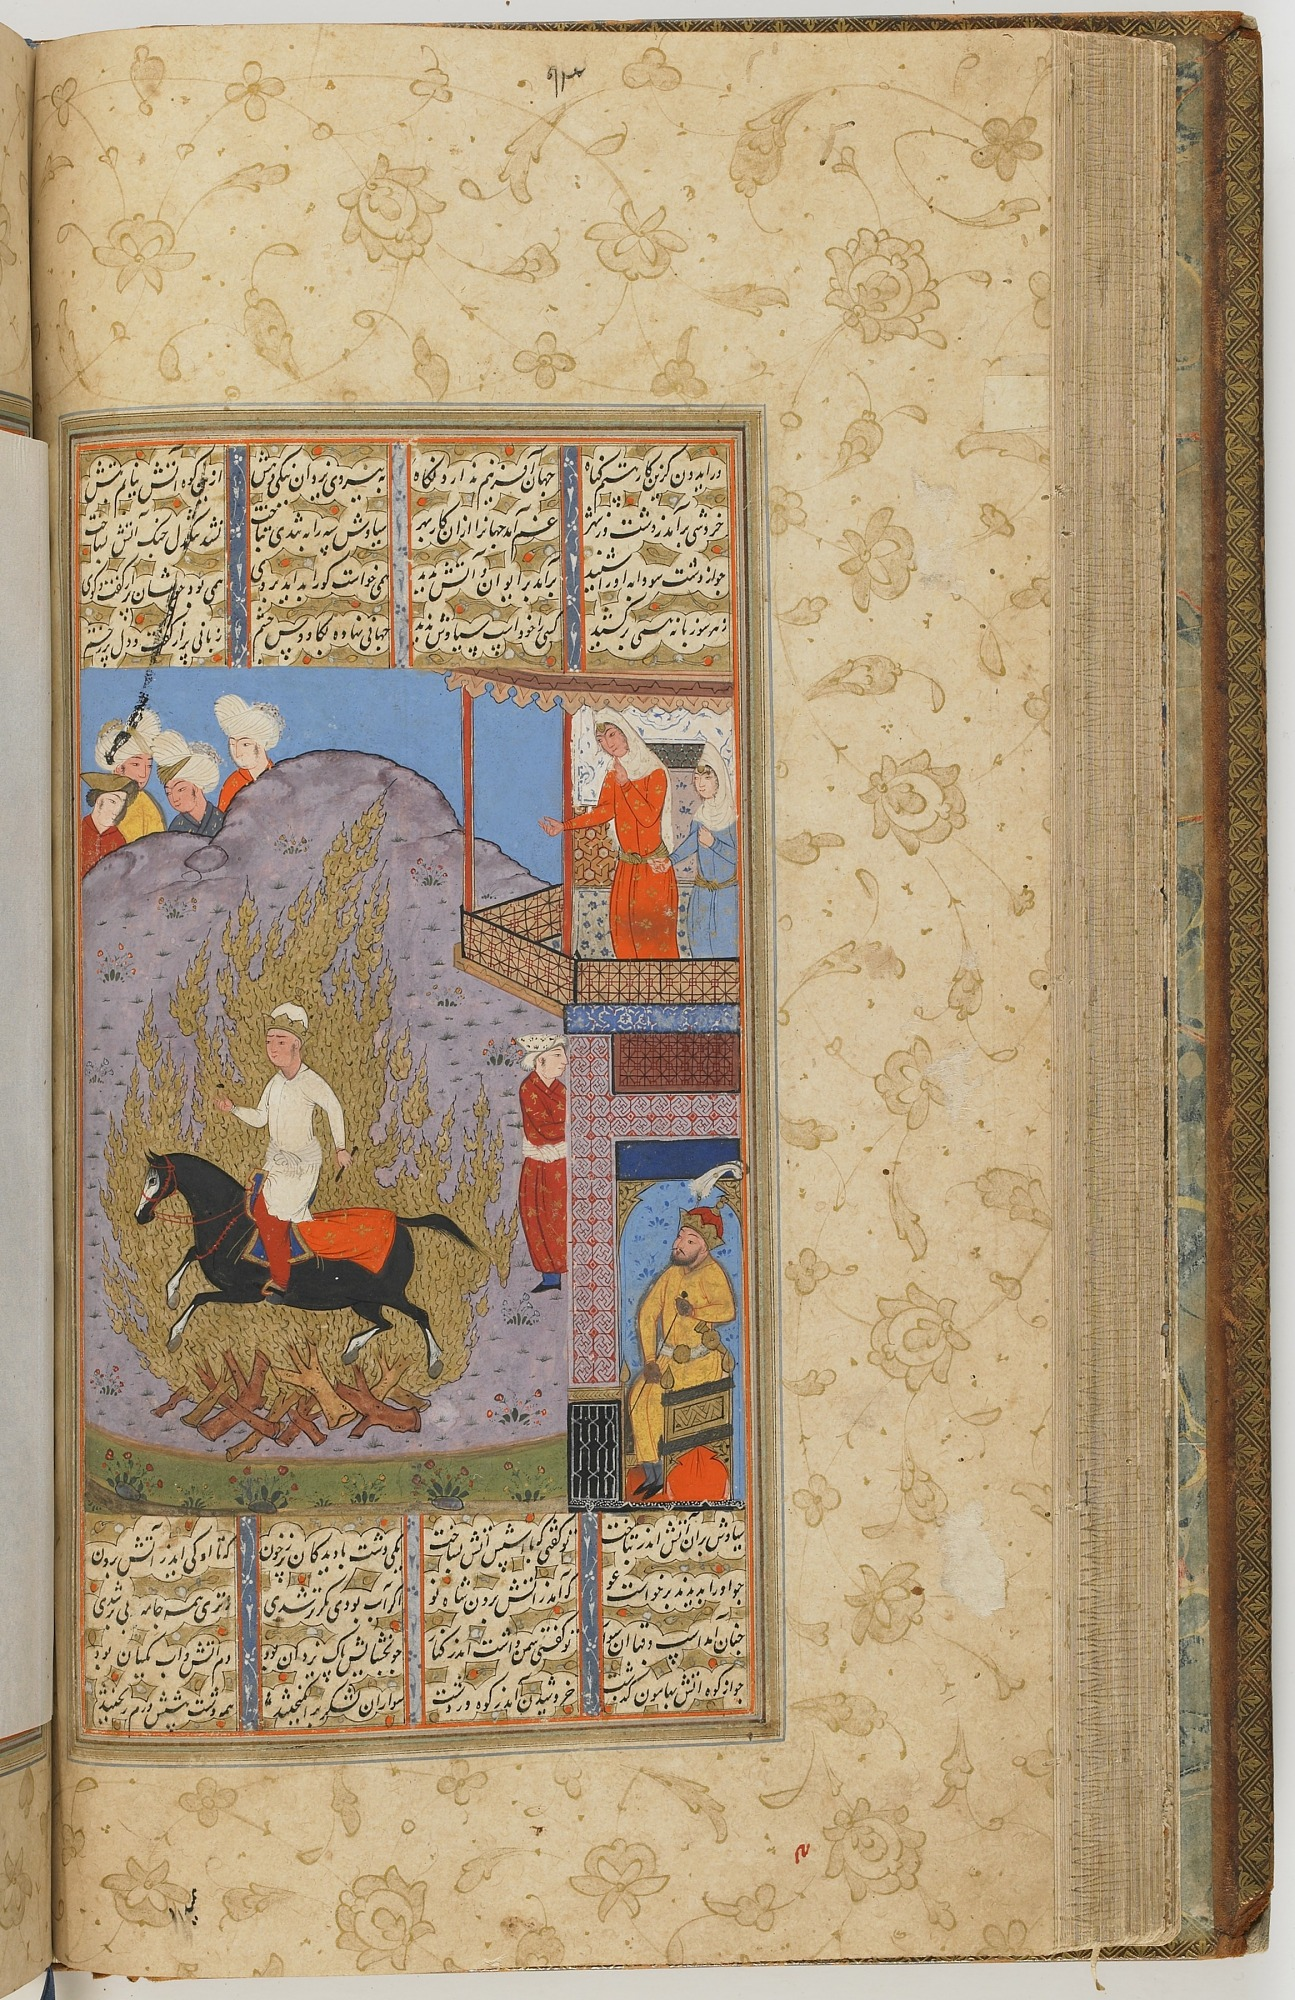 folio 94 verso: The Shahnama (Book of kings) by Firdausi (d. 1020)